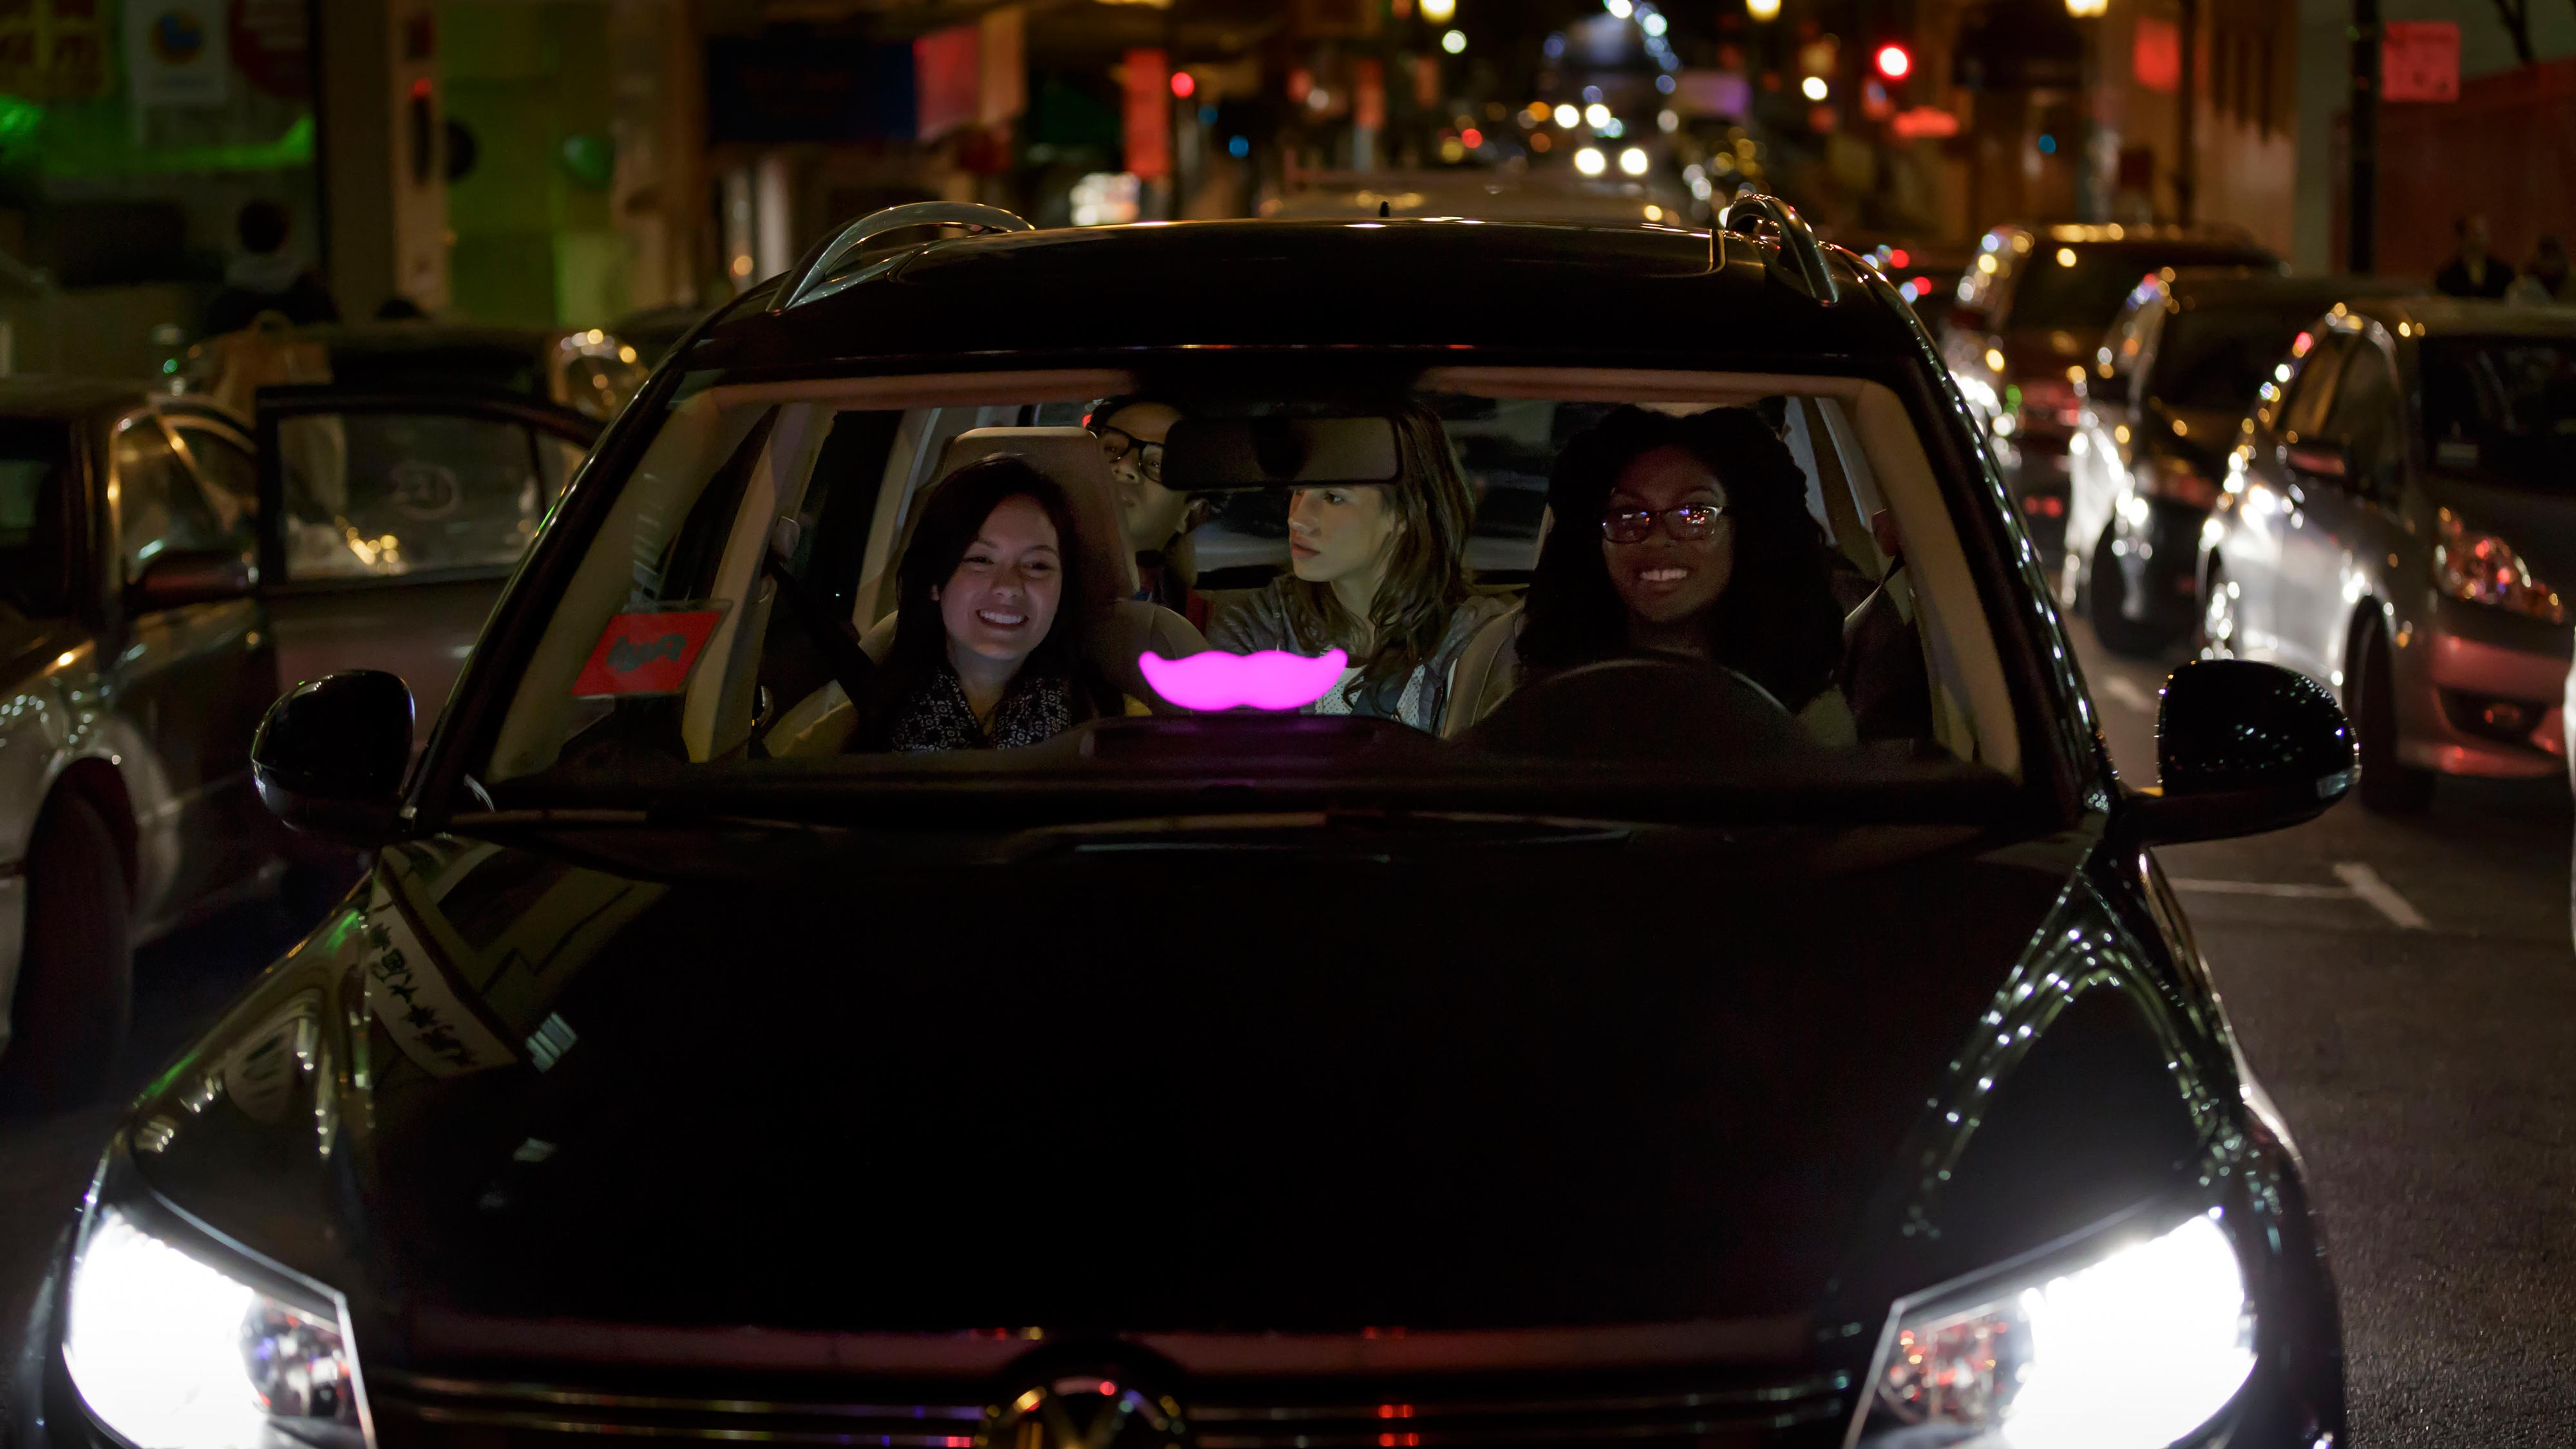 Lyft is handing out cheaper rides for the safest and coolest reason